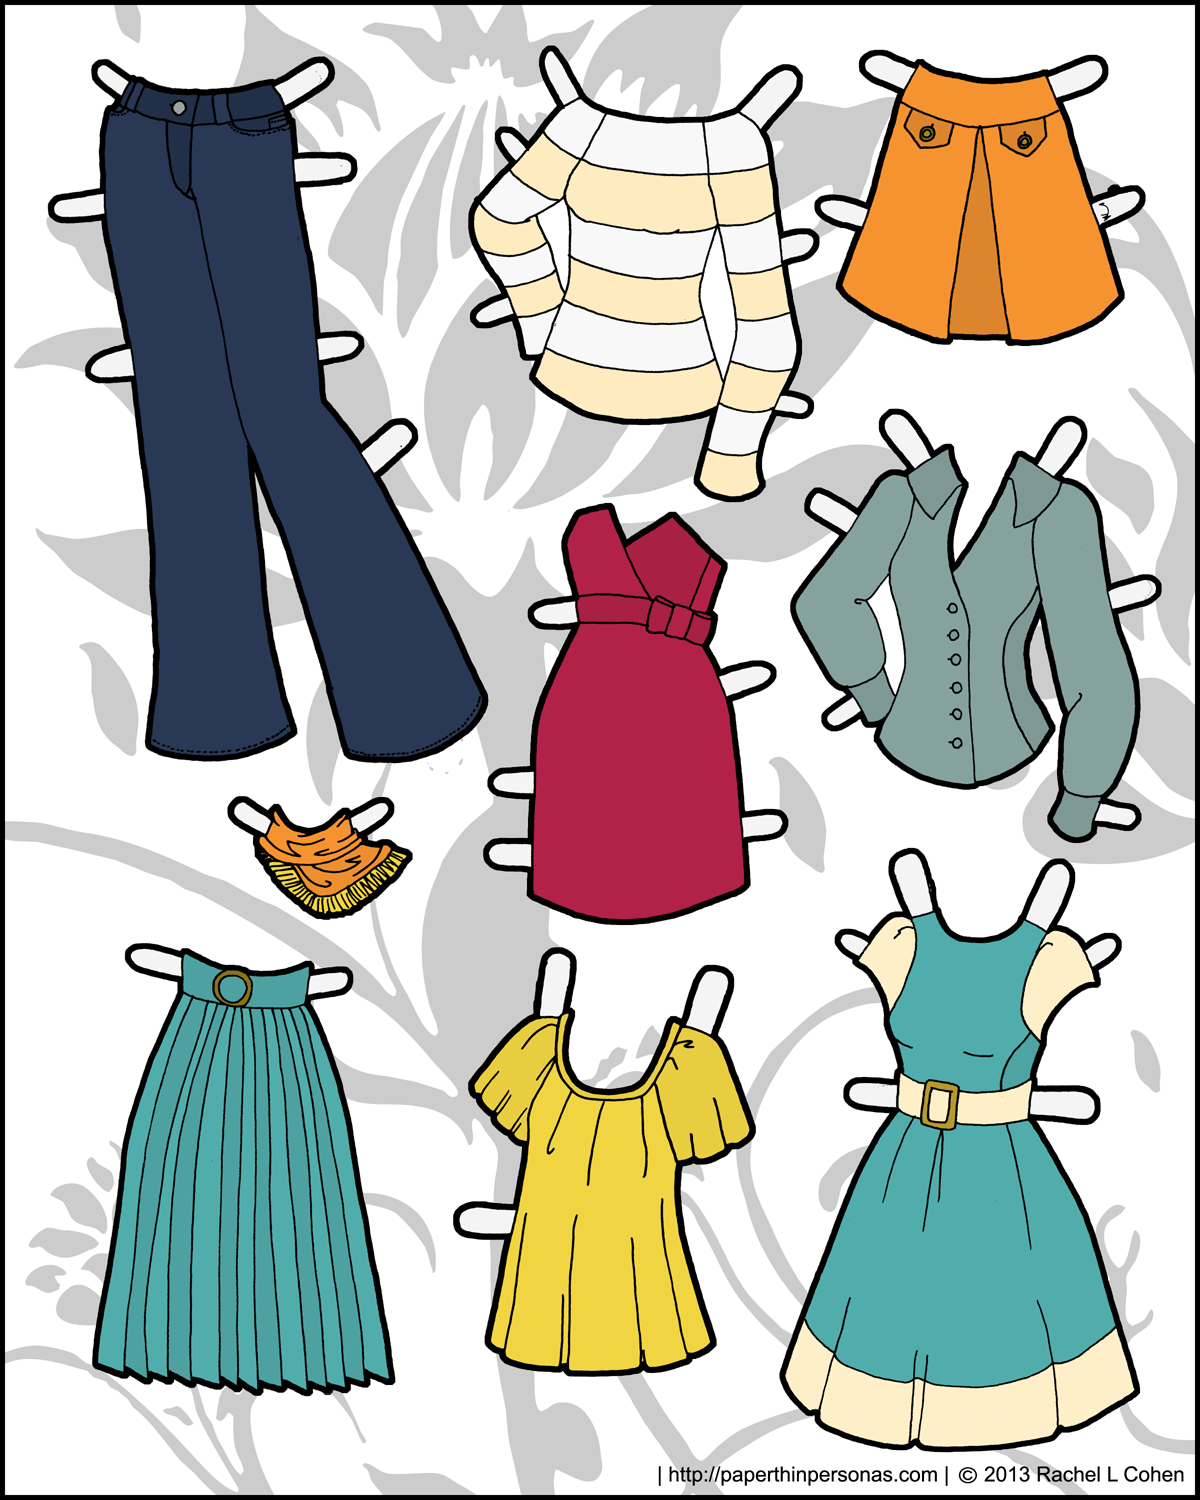 photograph regarding Paper Doll Clothing Printable identified as And nevertheless even more garments for the Ms Model Printable Paper